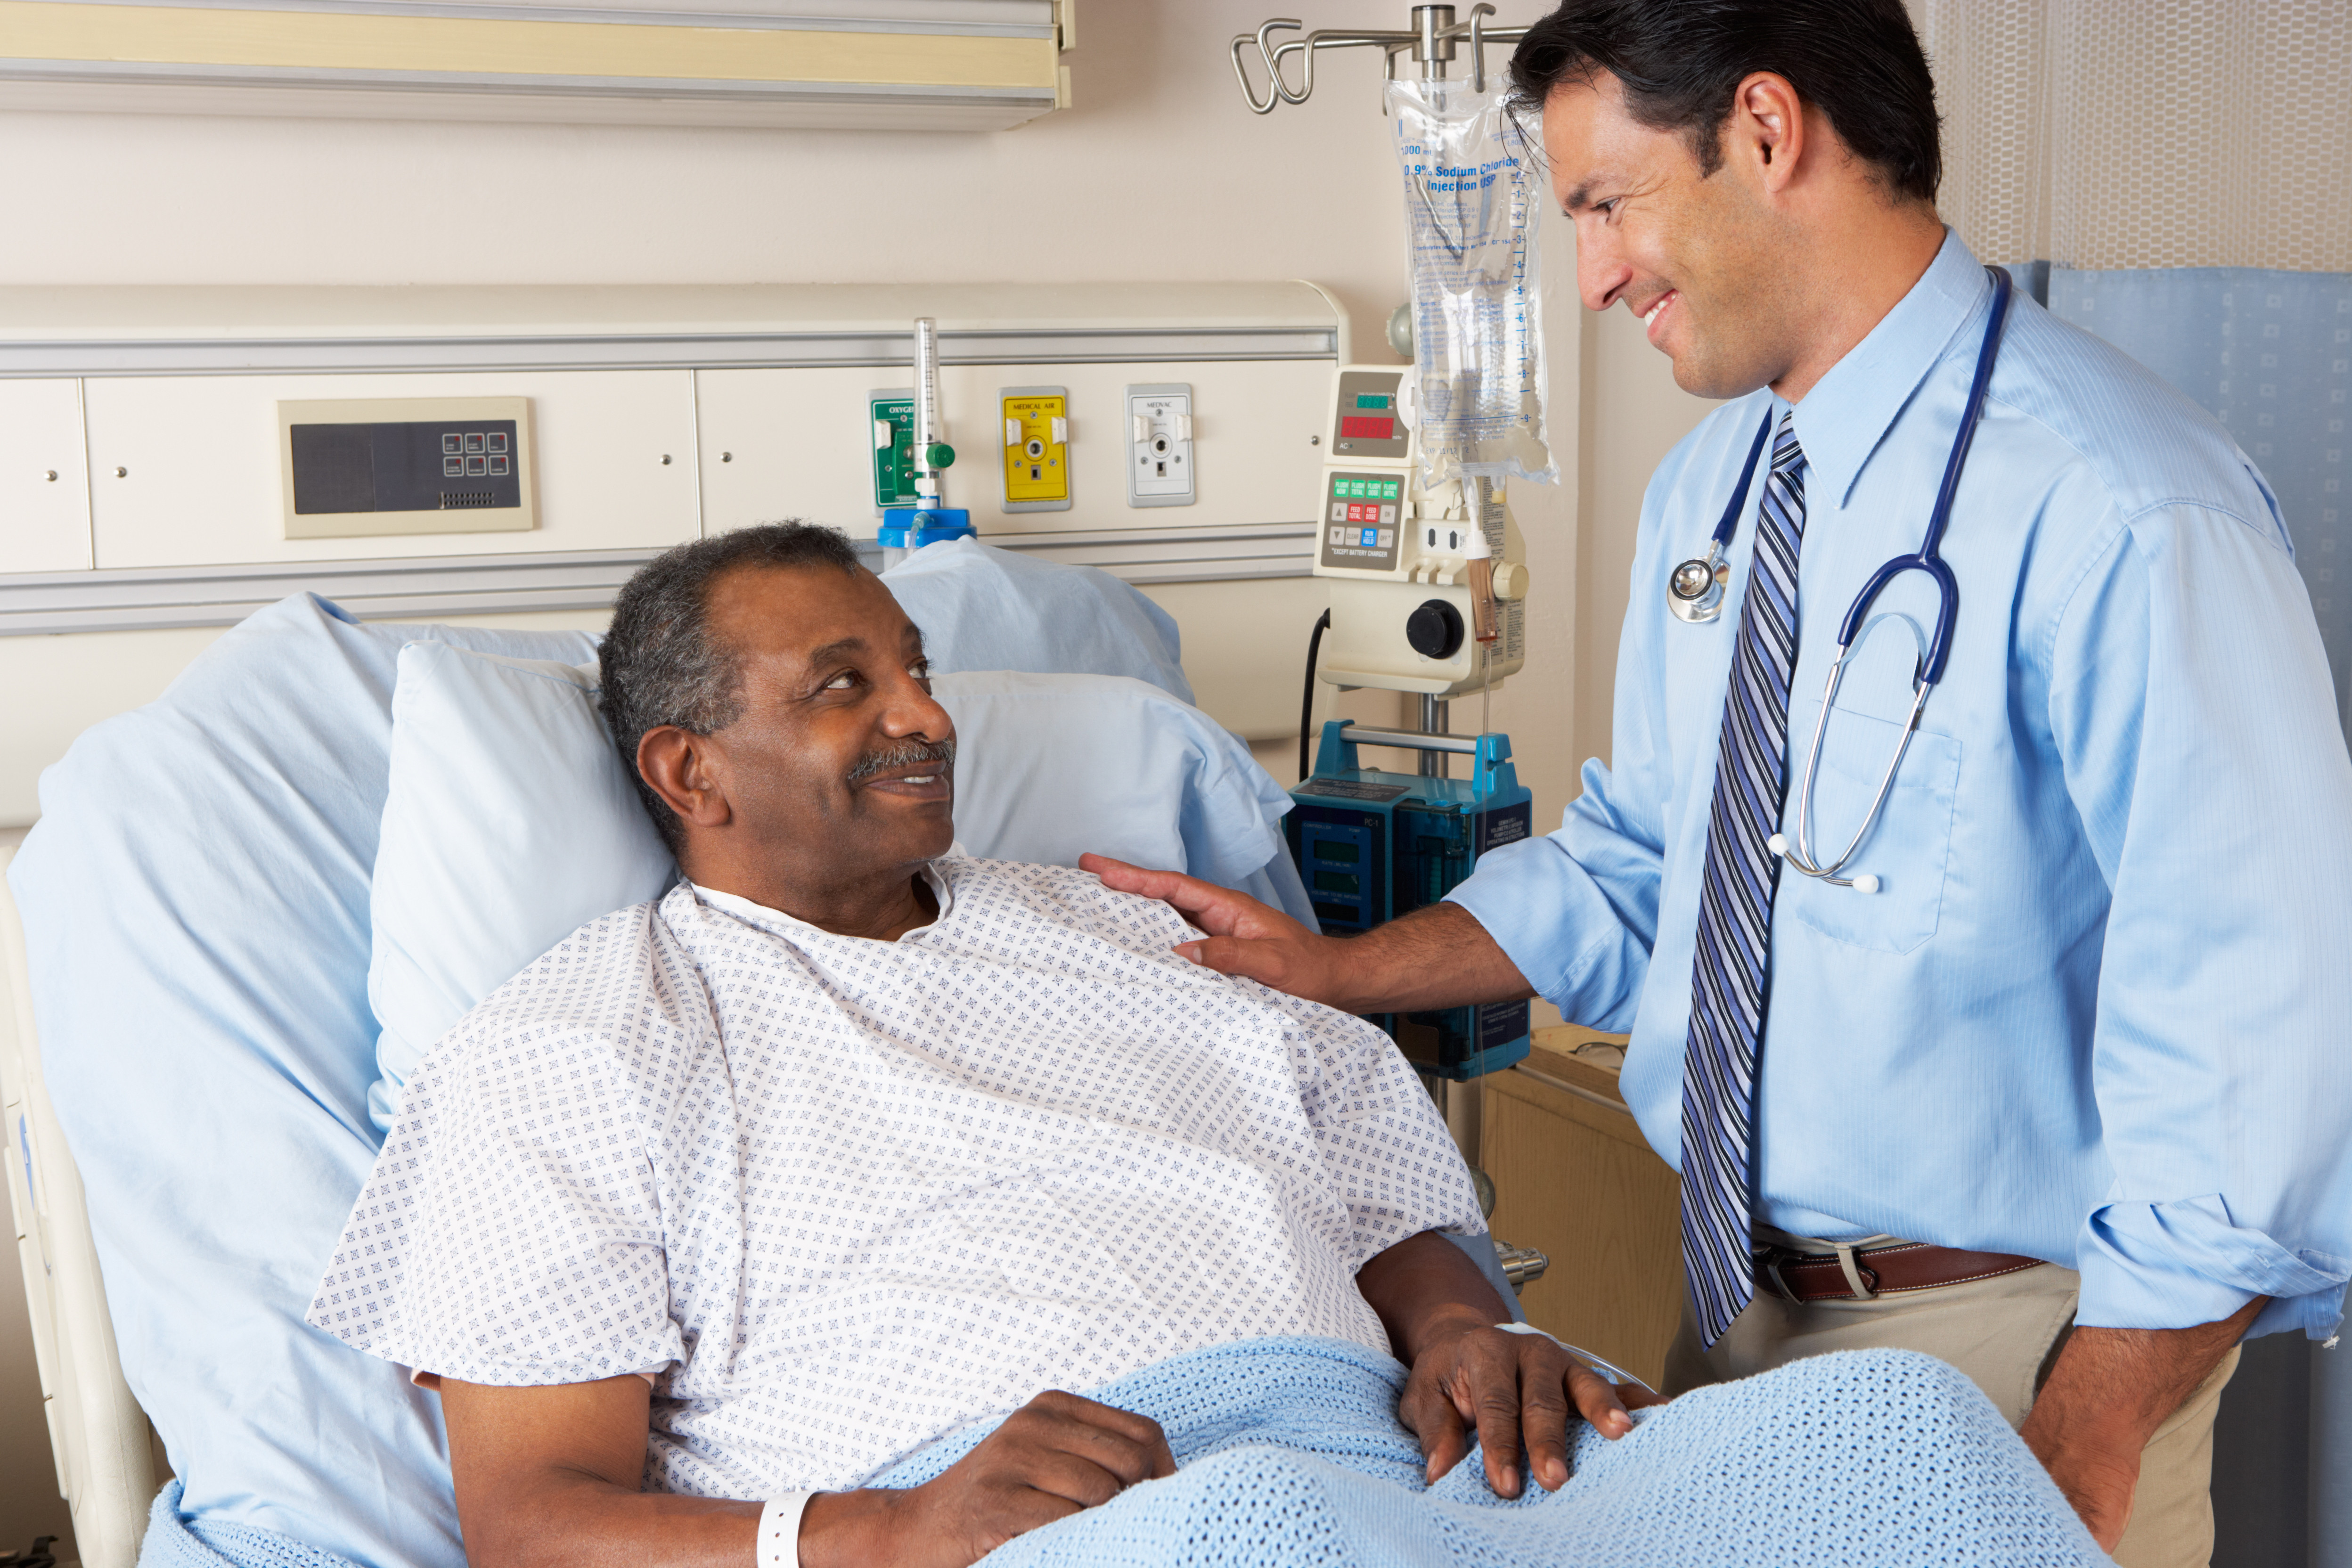 doctor-visiting-black-male-patient-in-hospital-bed